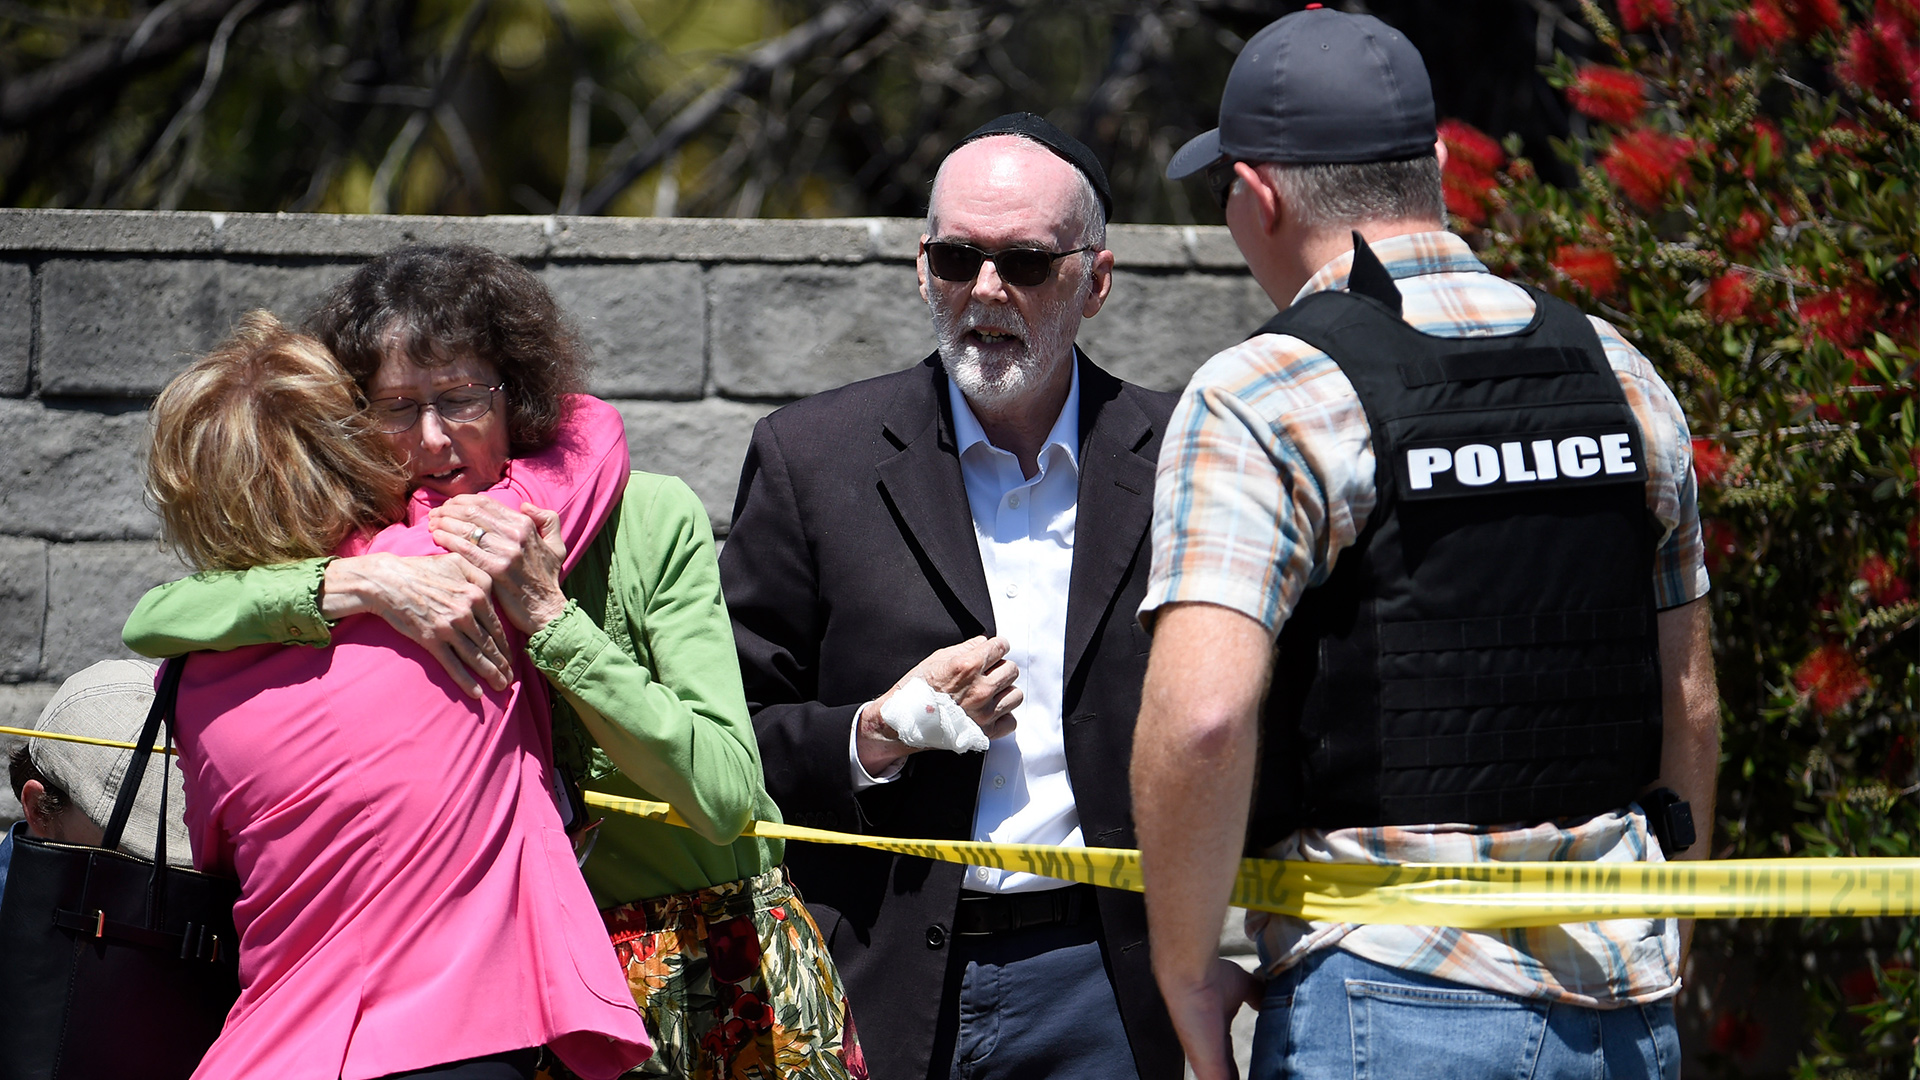 ap photo synagogue shooting california_1556399710217.jpg.jpg